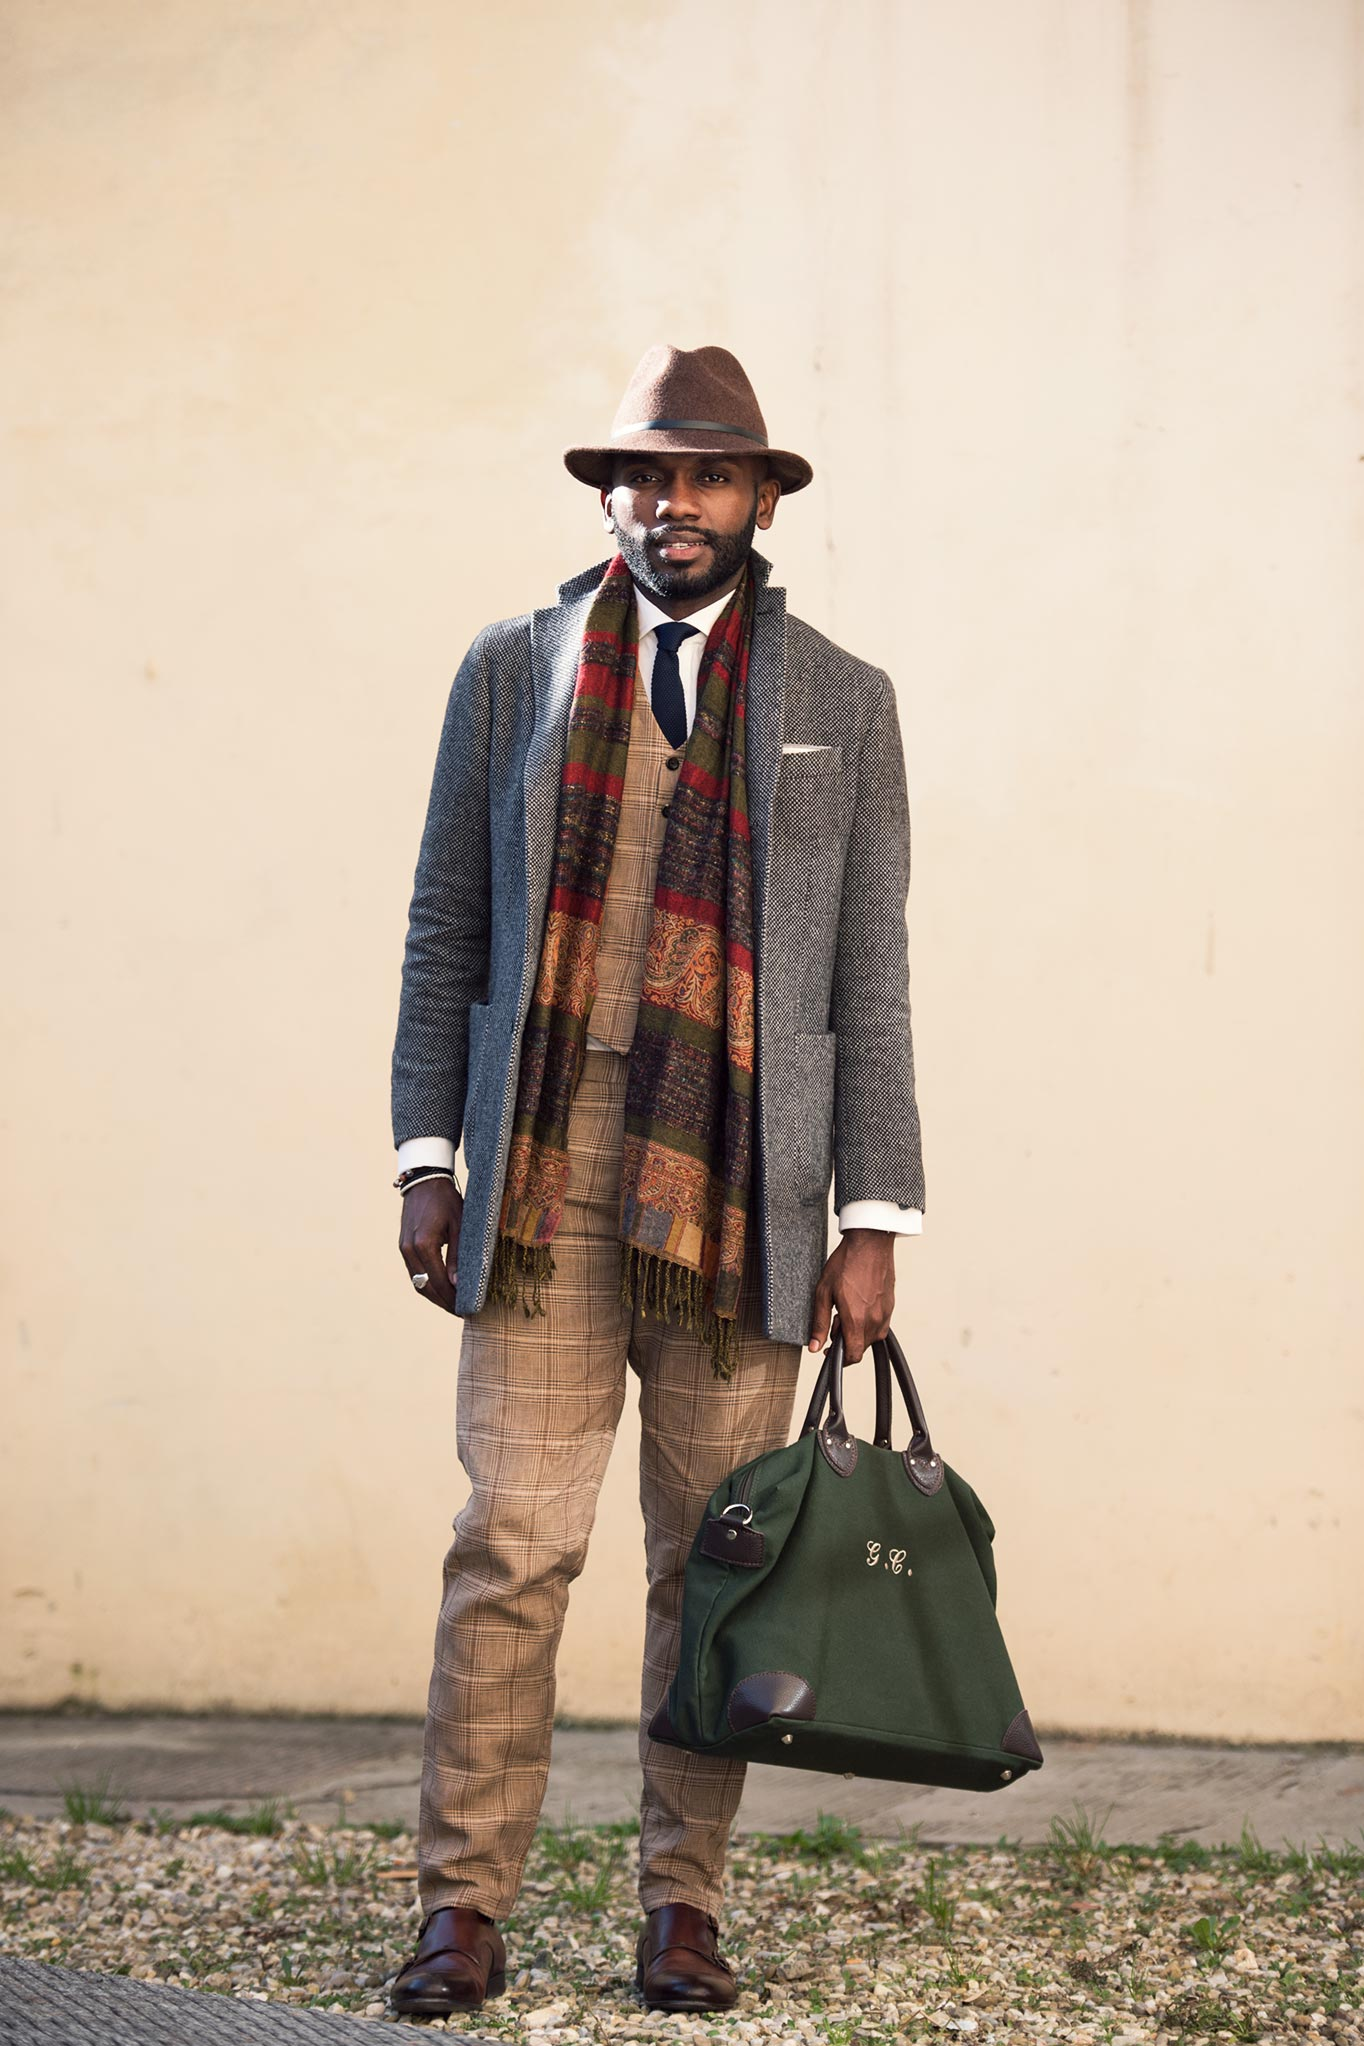 Geoff K. Cooper at Pitti Uomo 87